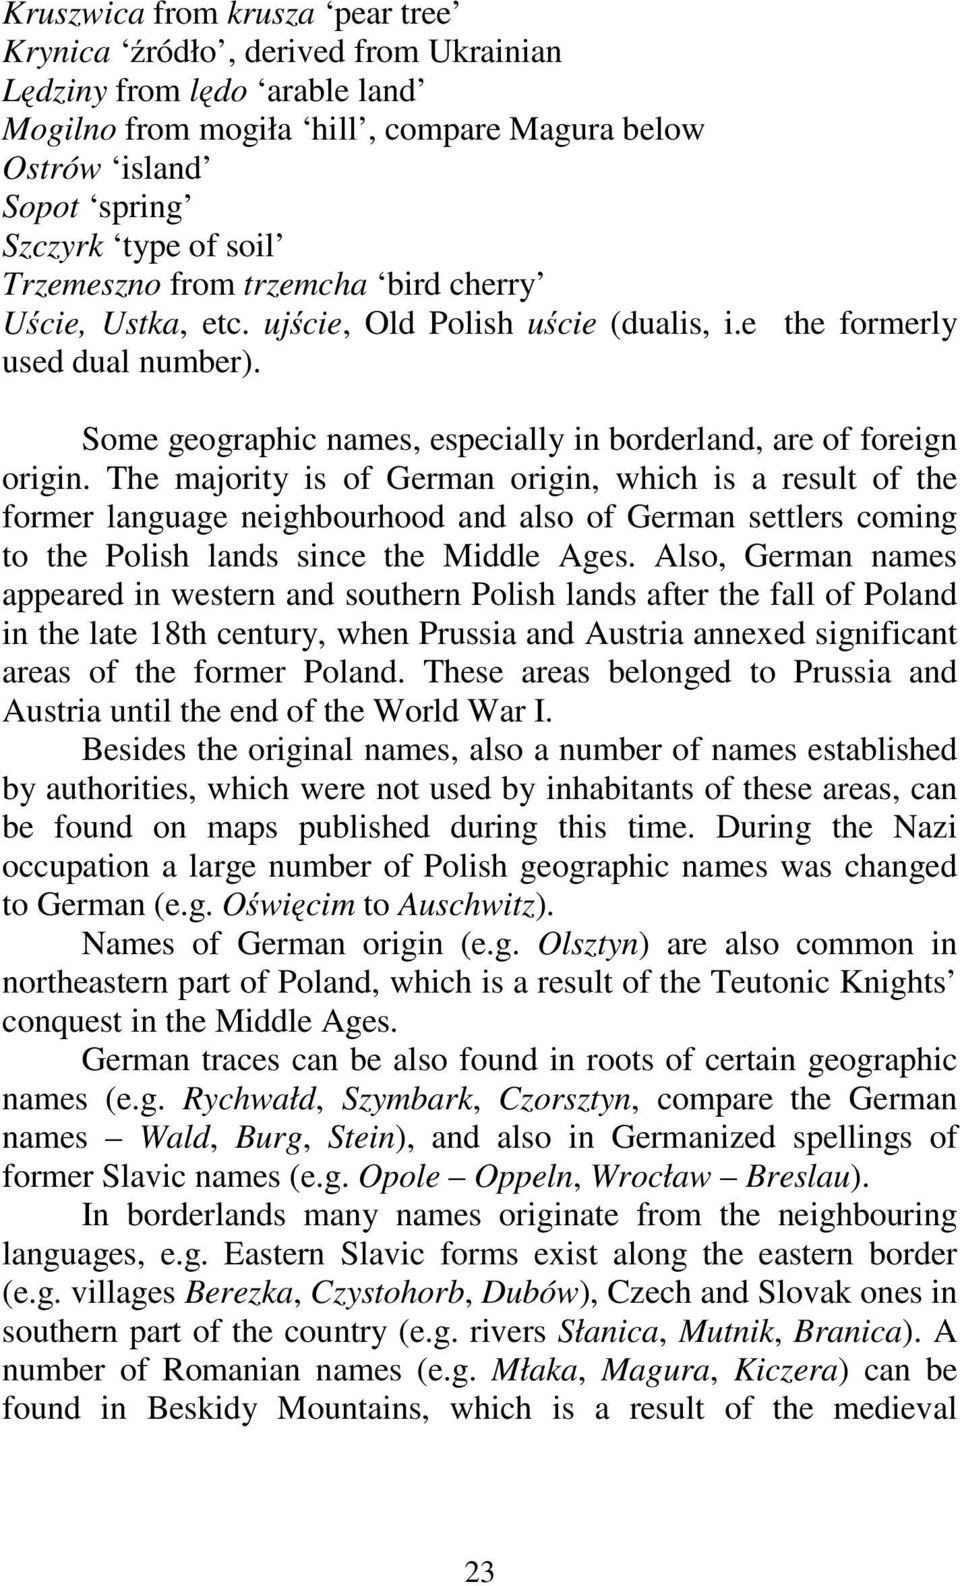 The majority is of German origin, which is a result of the former language neighbourhood and also of German settlers coming to the Polish lands since the Middle Ages.